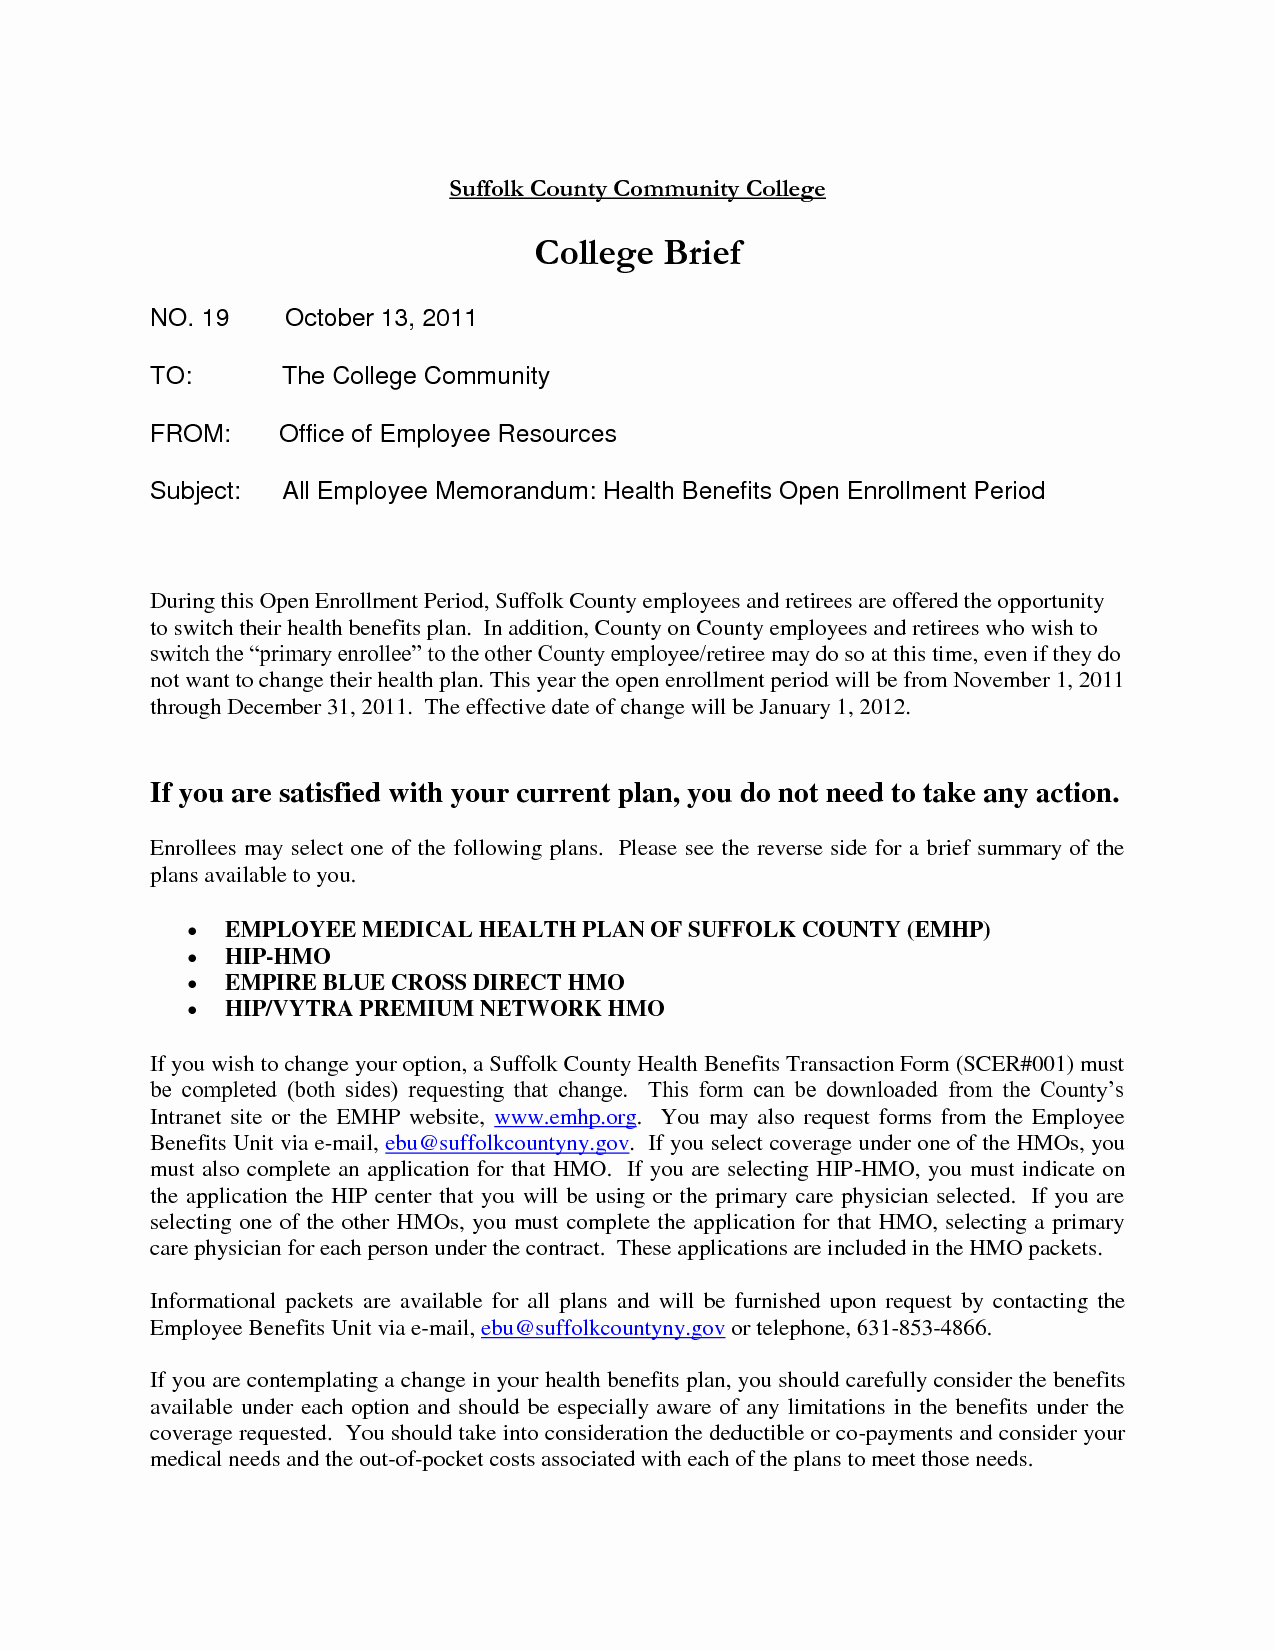 Sample Open Enrollment Letter to Employees Best Of Collection Open Enrollment Memo to Employees S